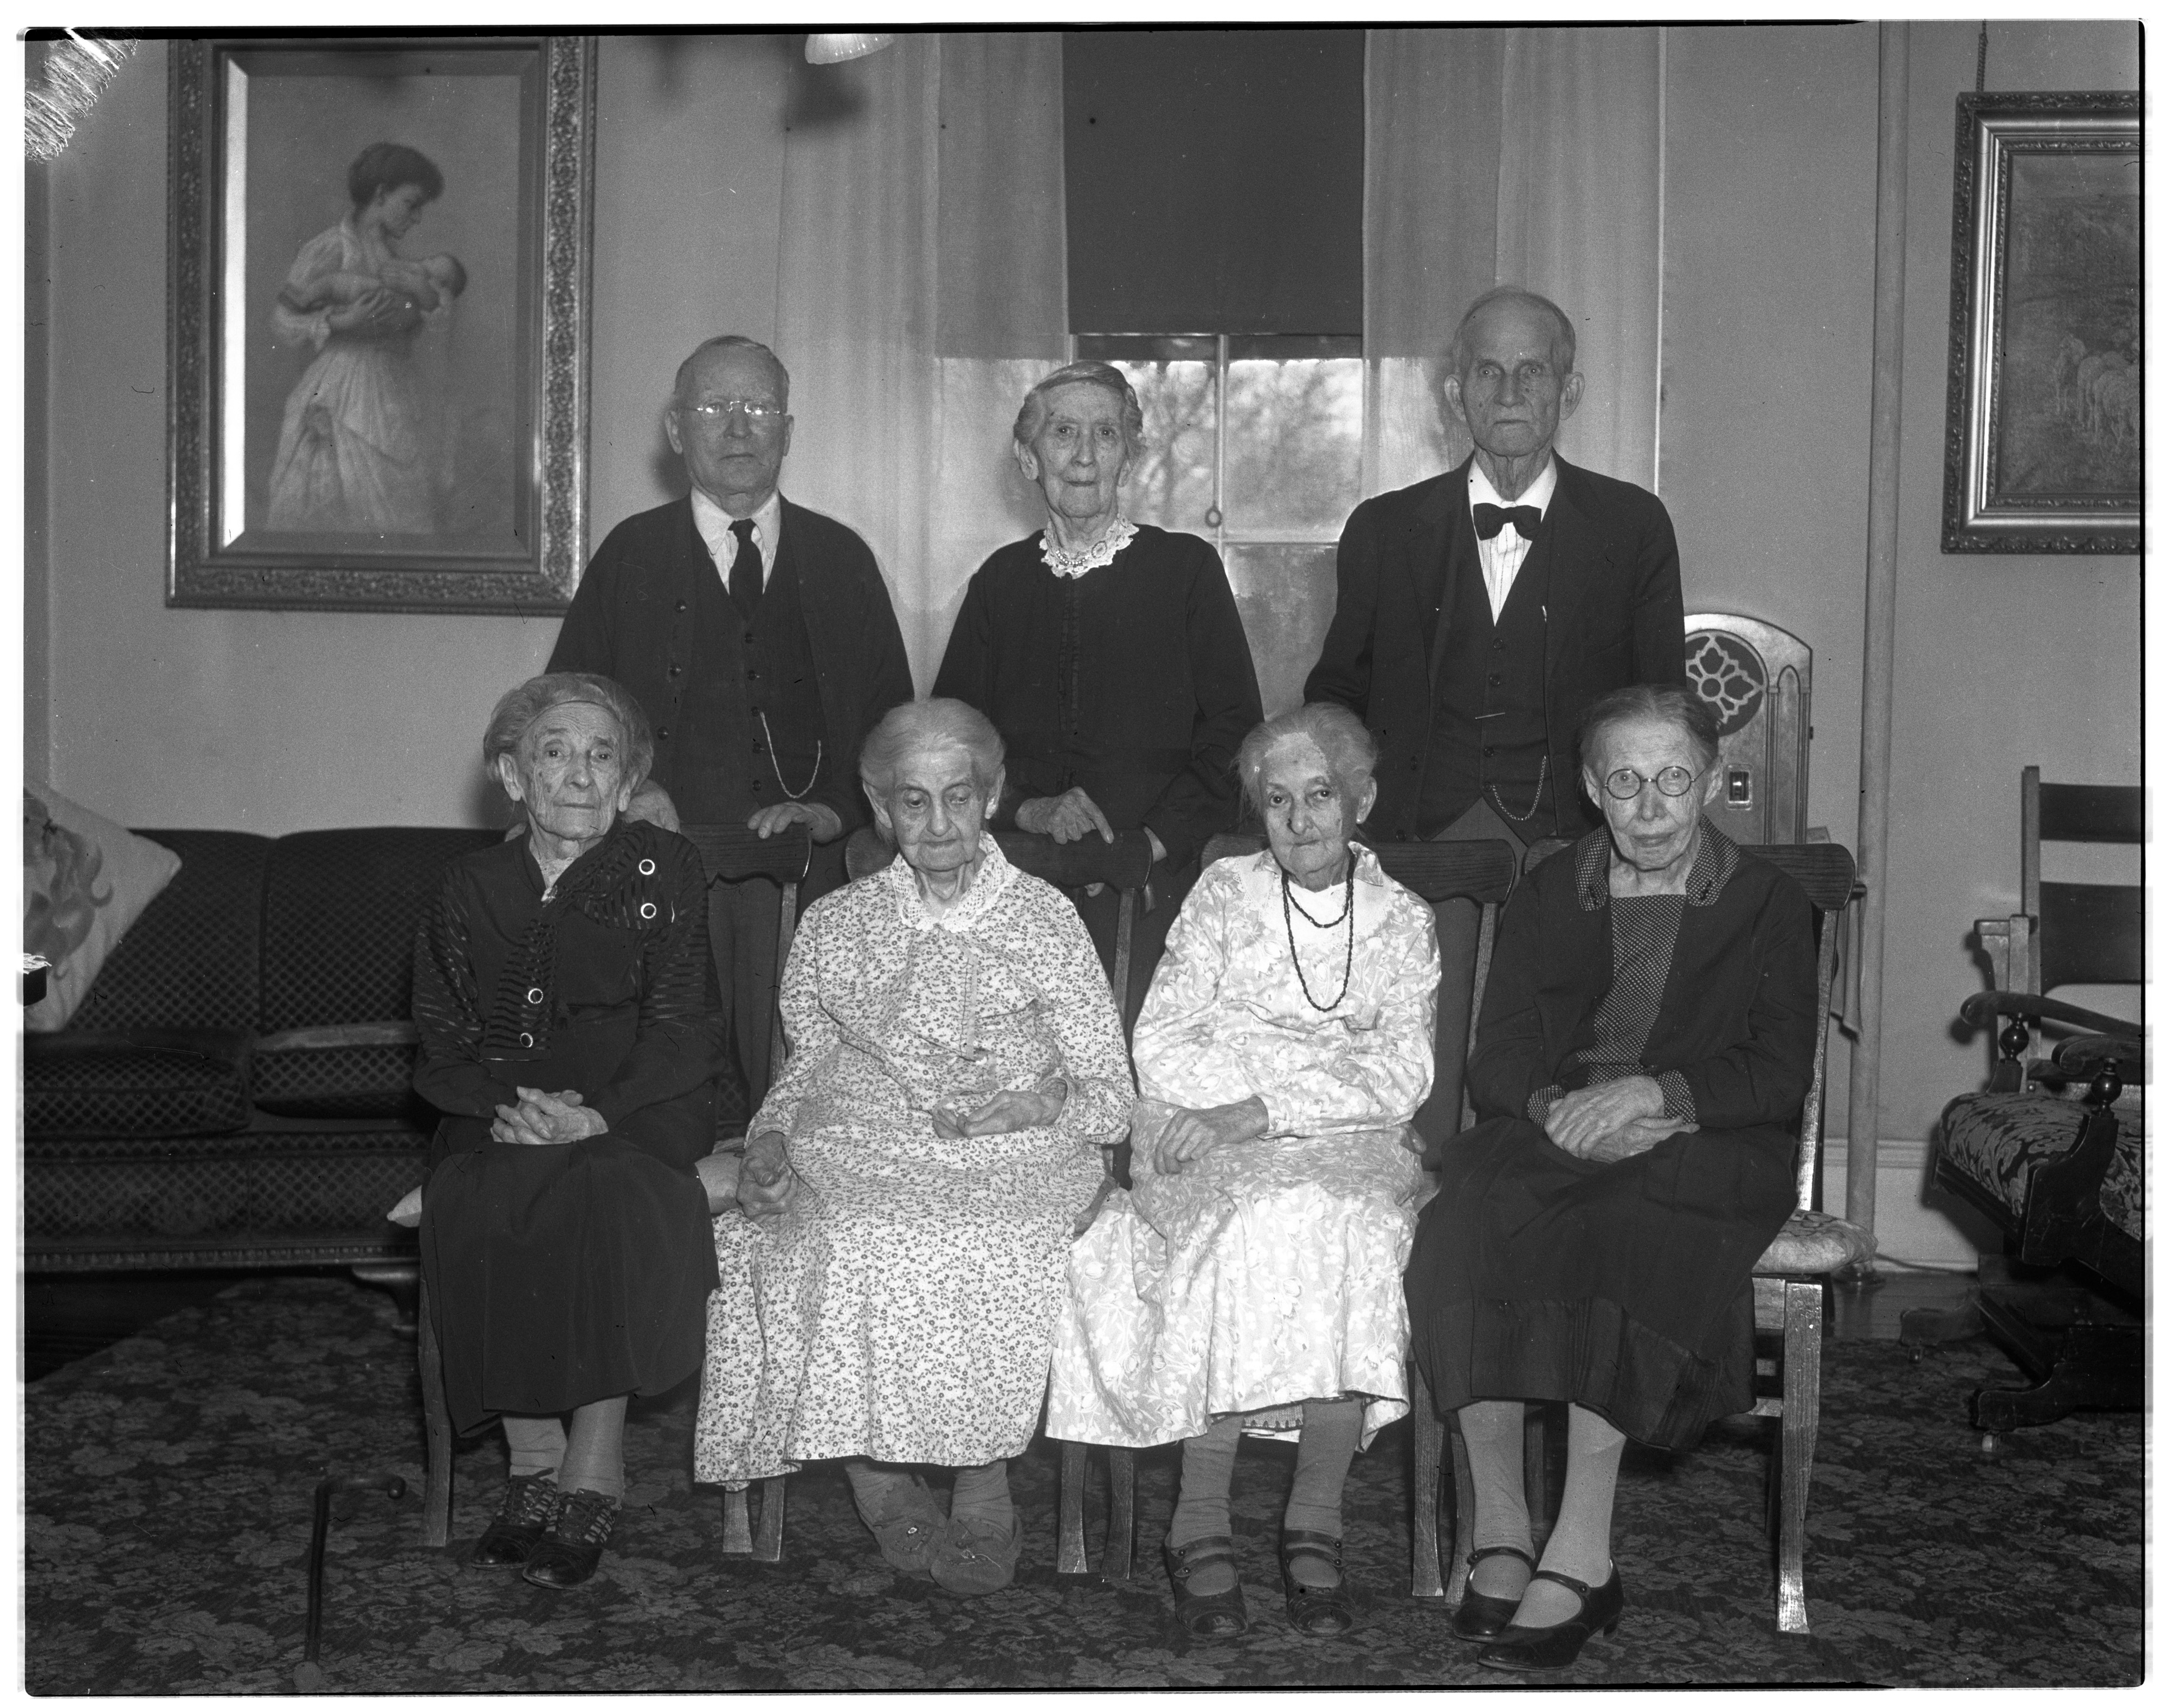 Oldest Residents of Chelsea Methodist Episcopal Home image